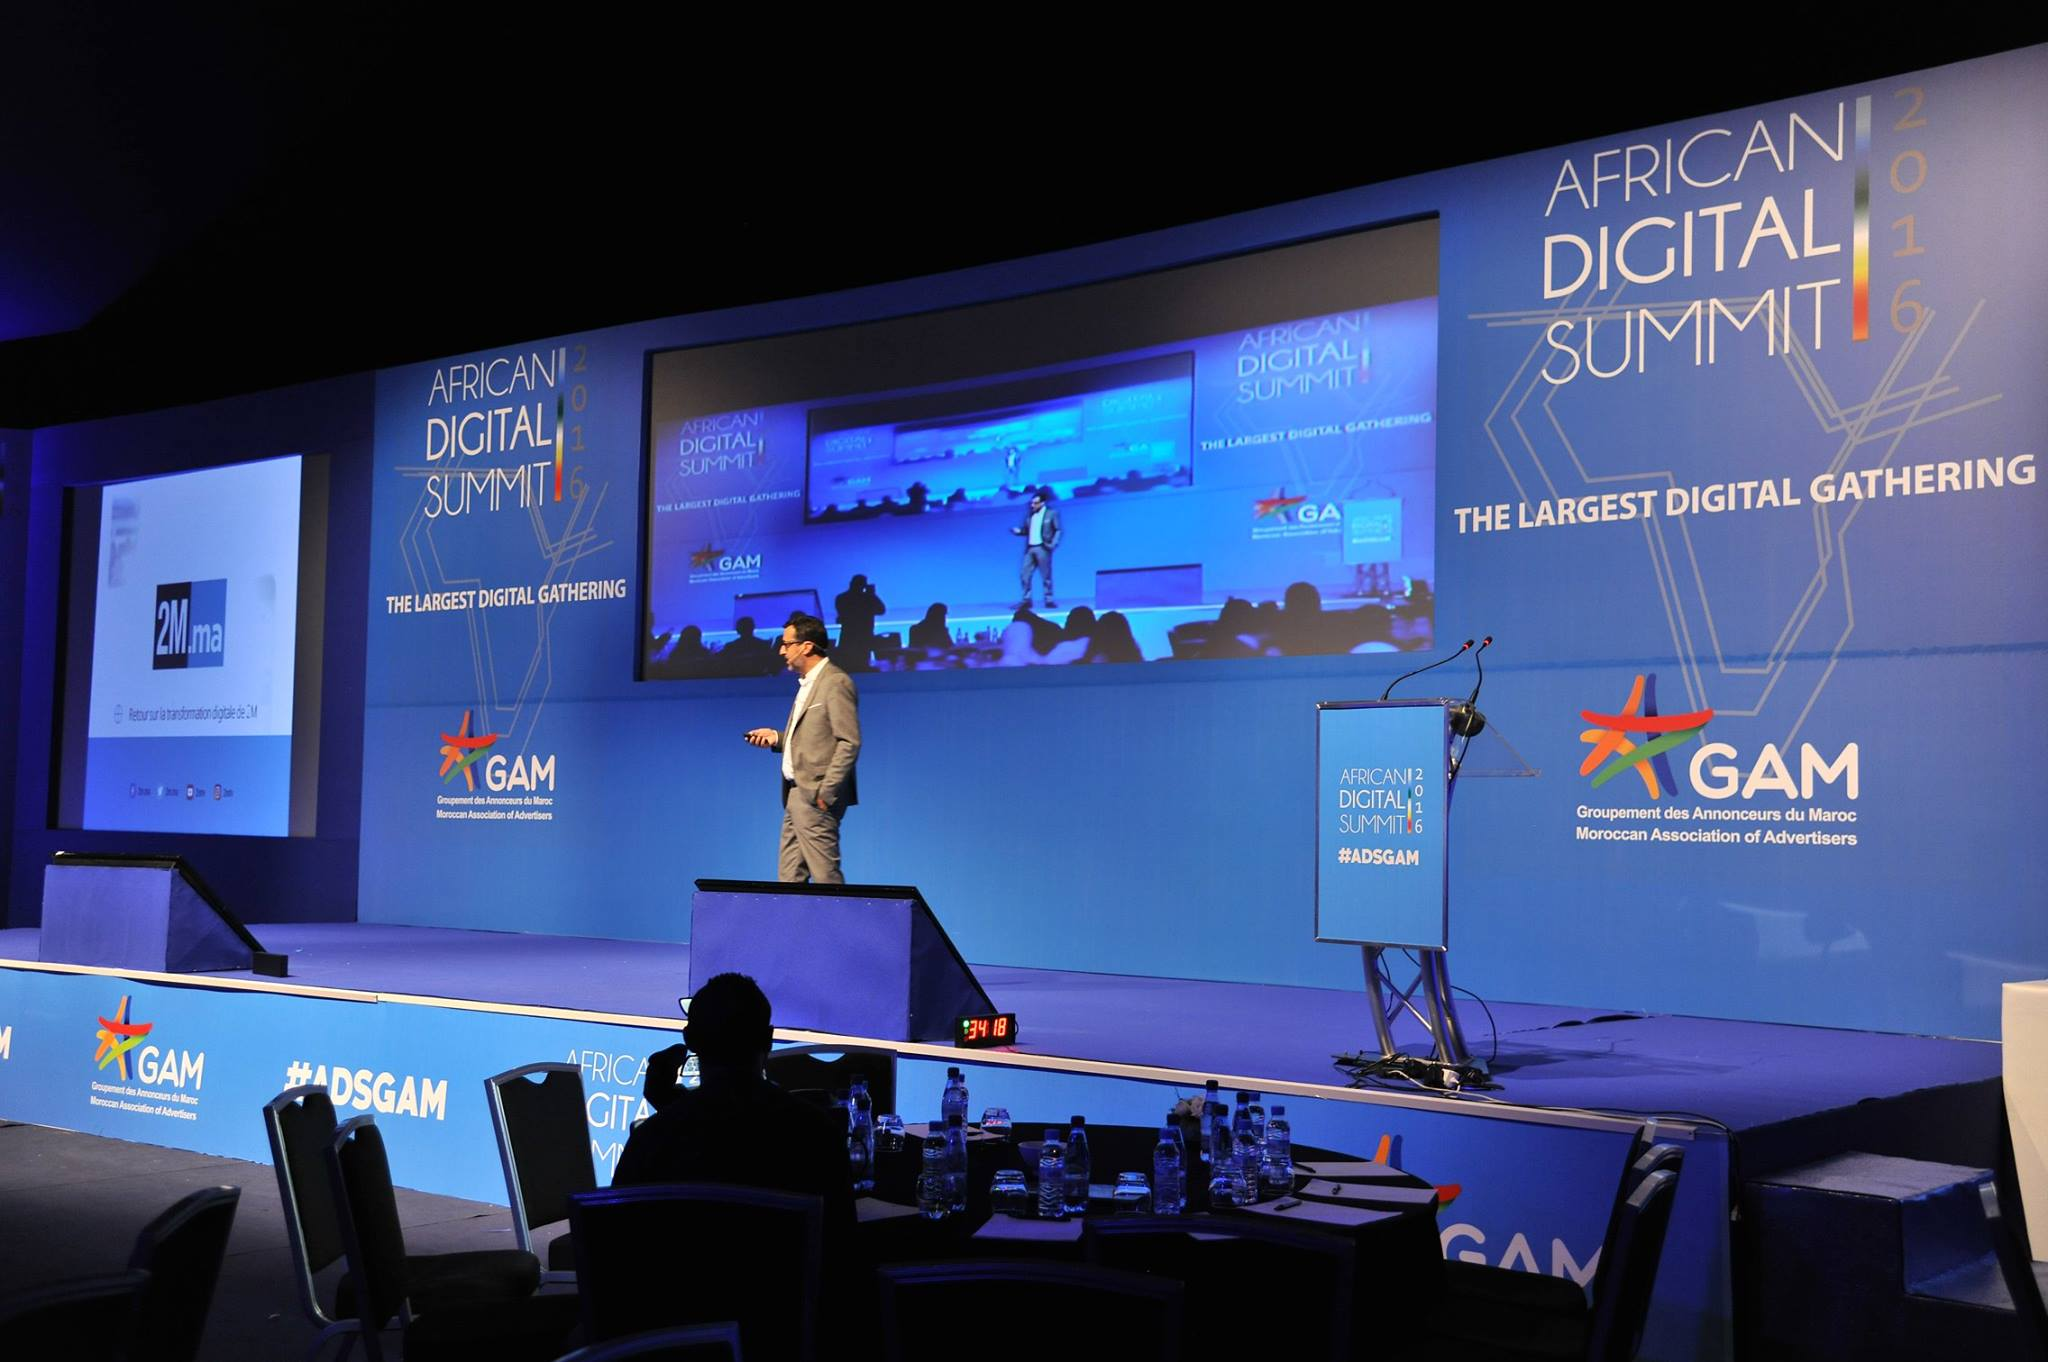 African Digital Summit : Voici le programme et les speakers